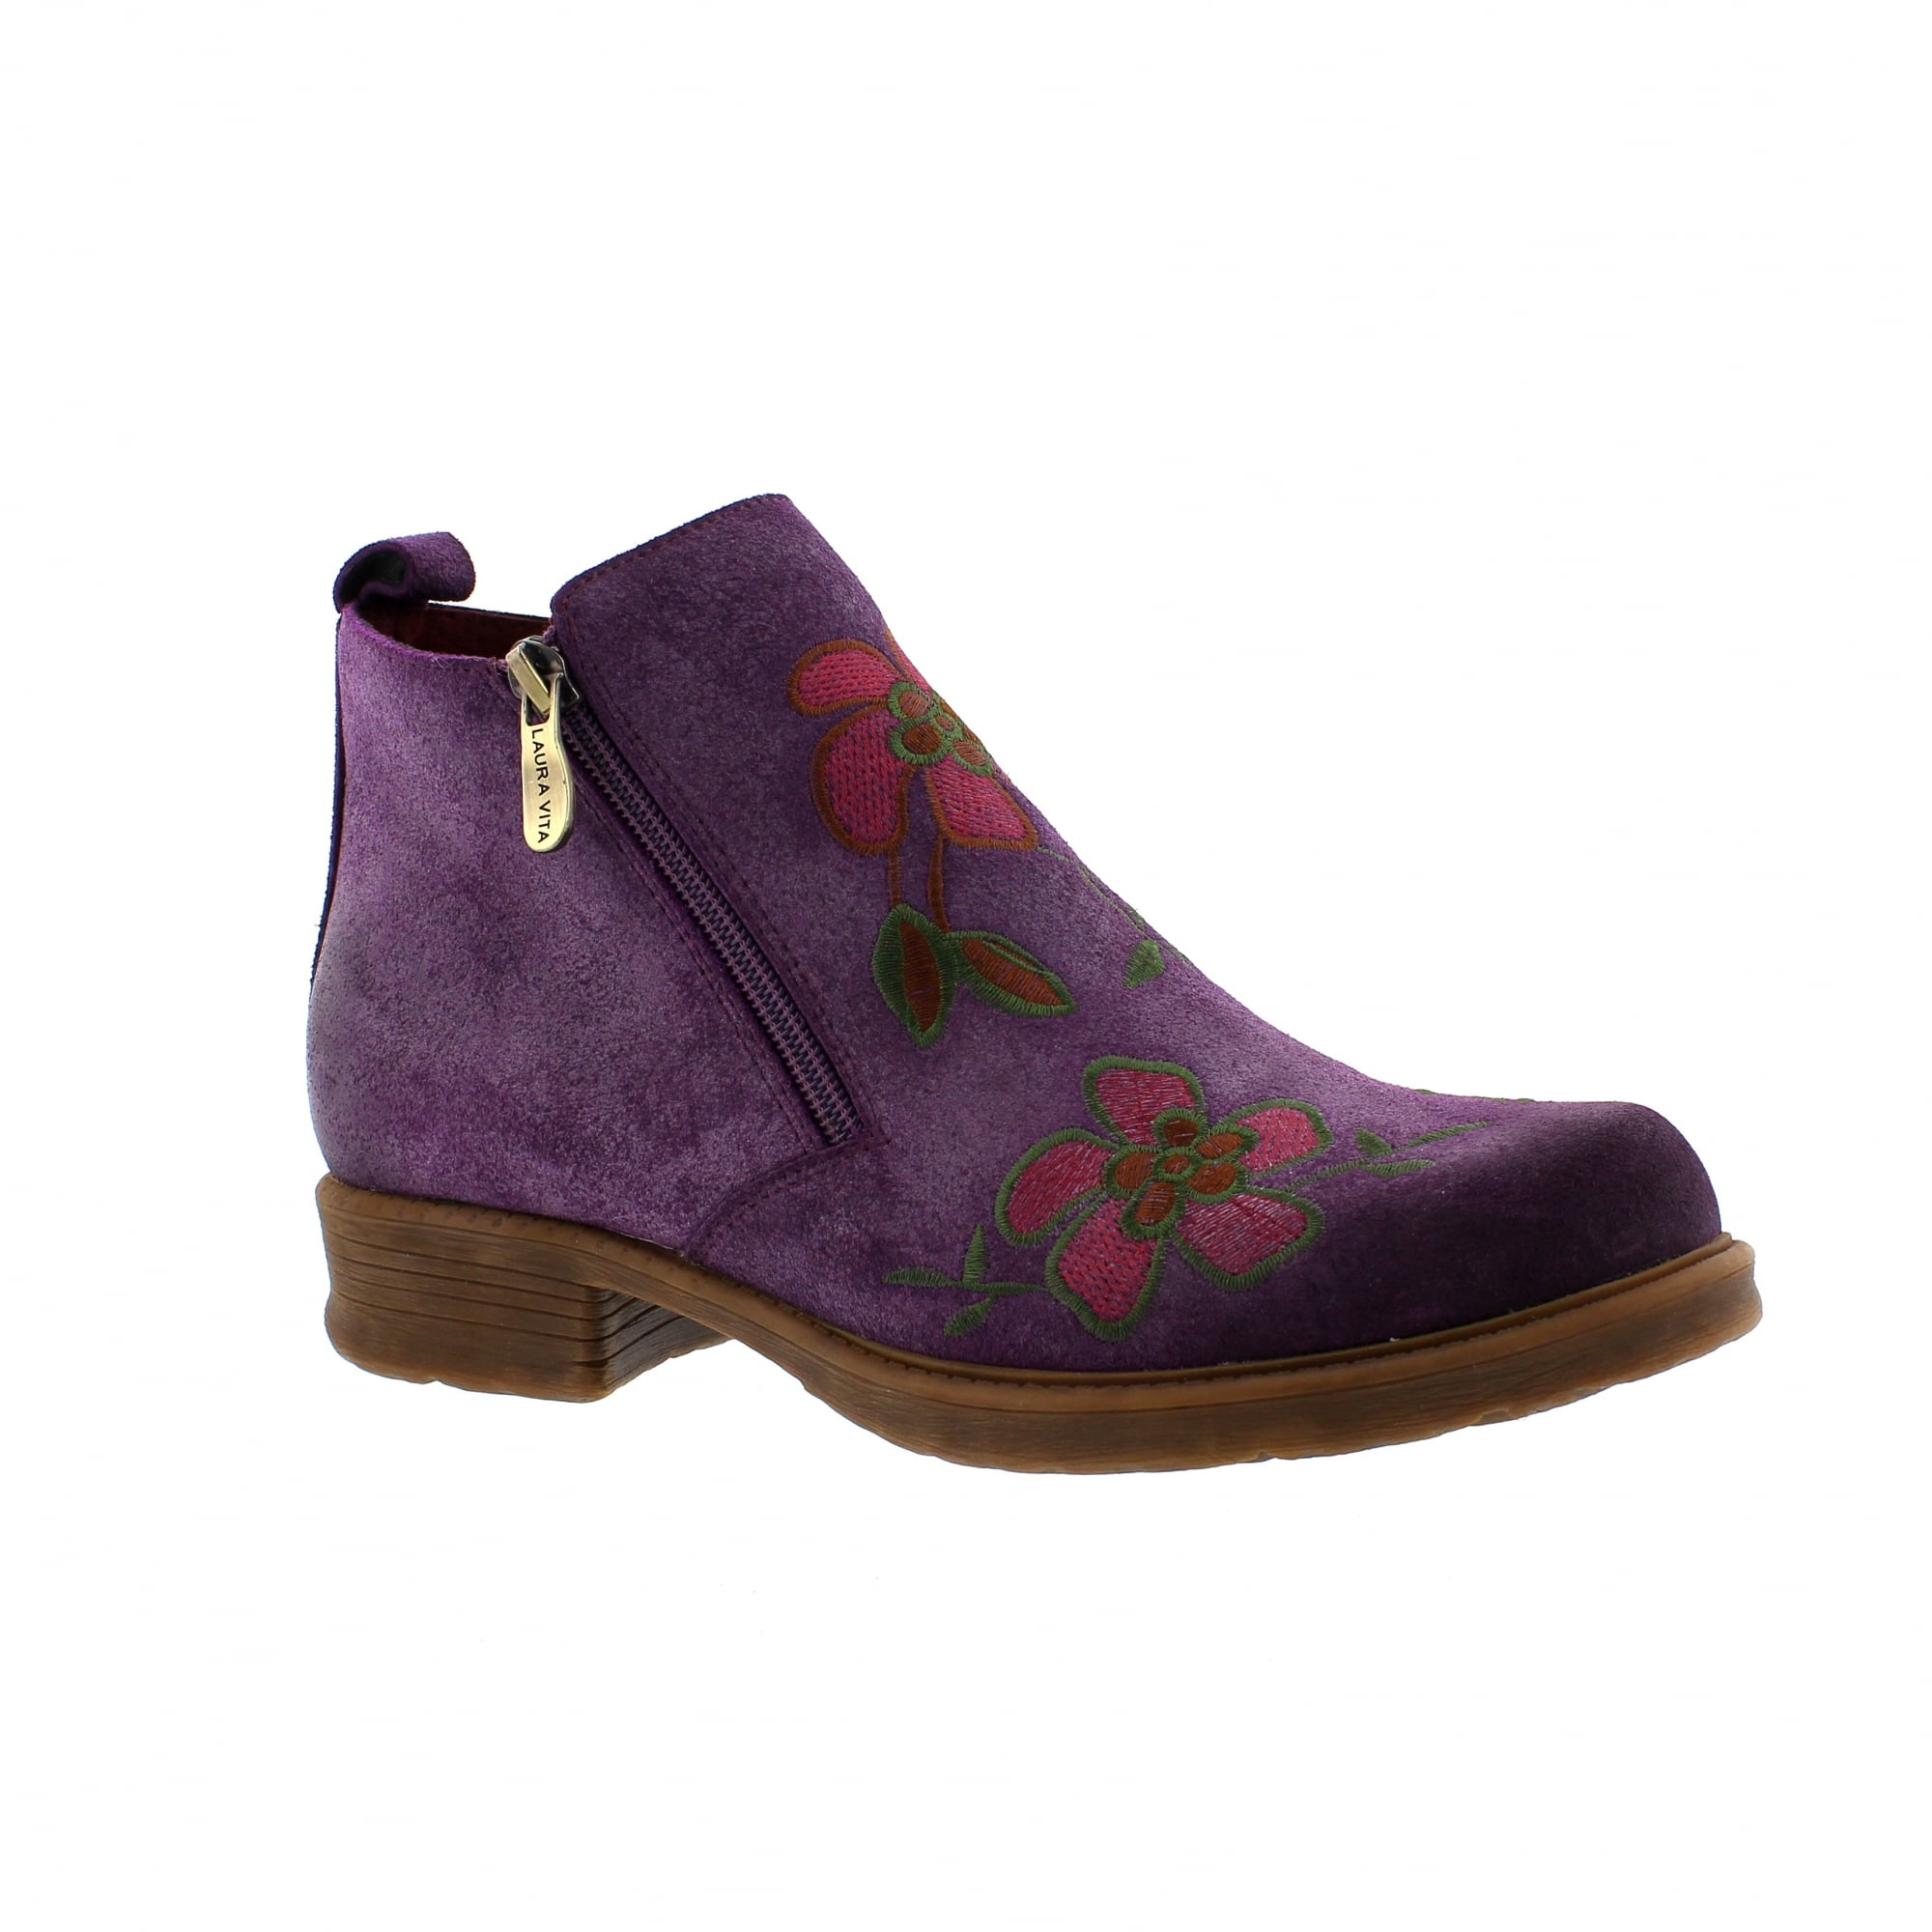 latest style great deals 2017 search for original Anita 02 | Violet